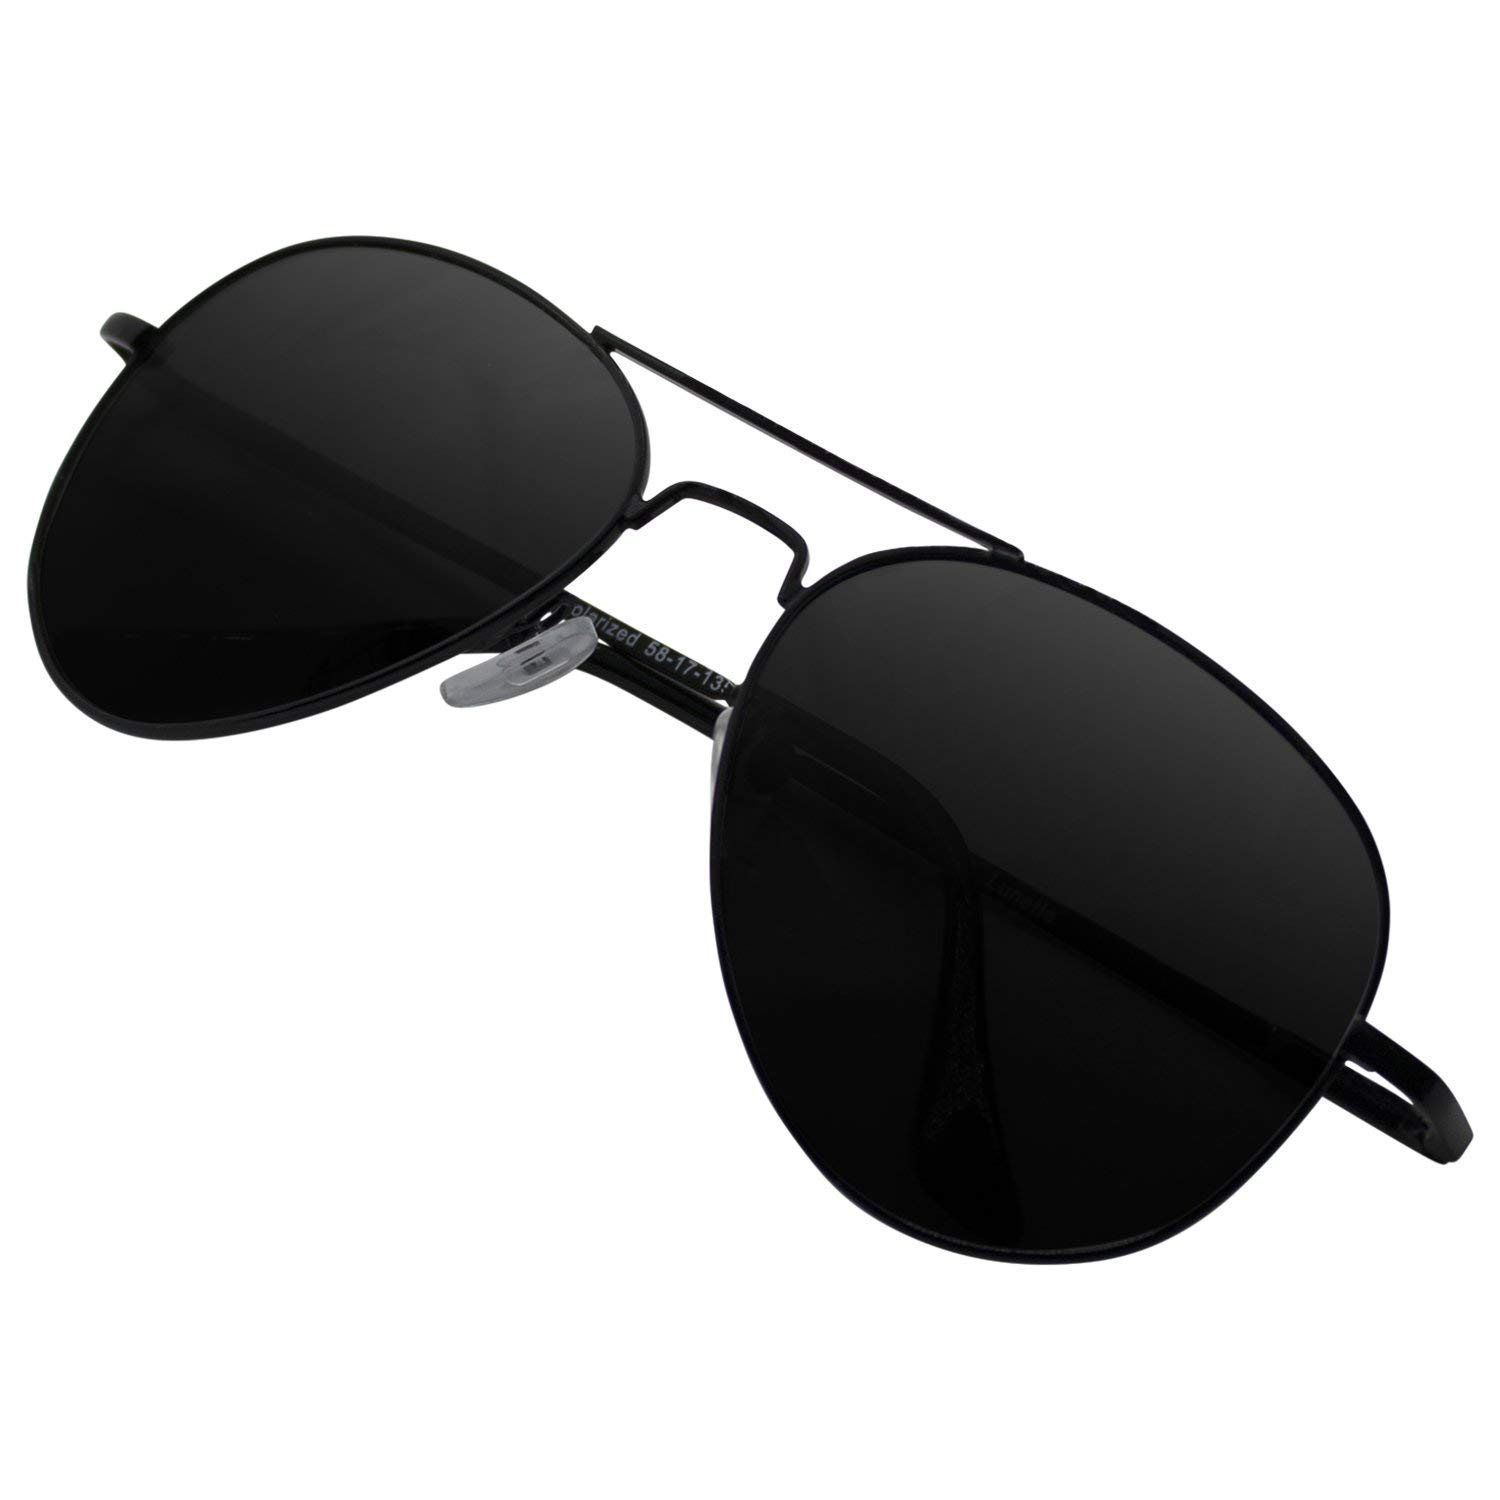 Lunette Aviator Sunglasses Black Edition for Women and Men with Polarized Lens and UV400 Protection